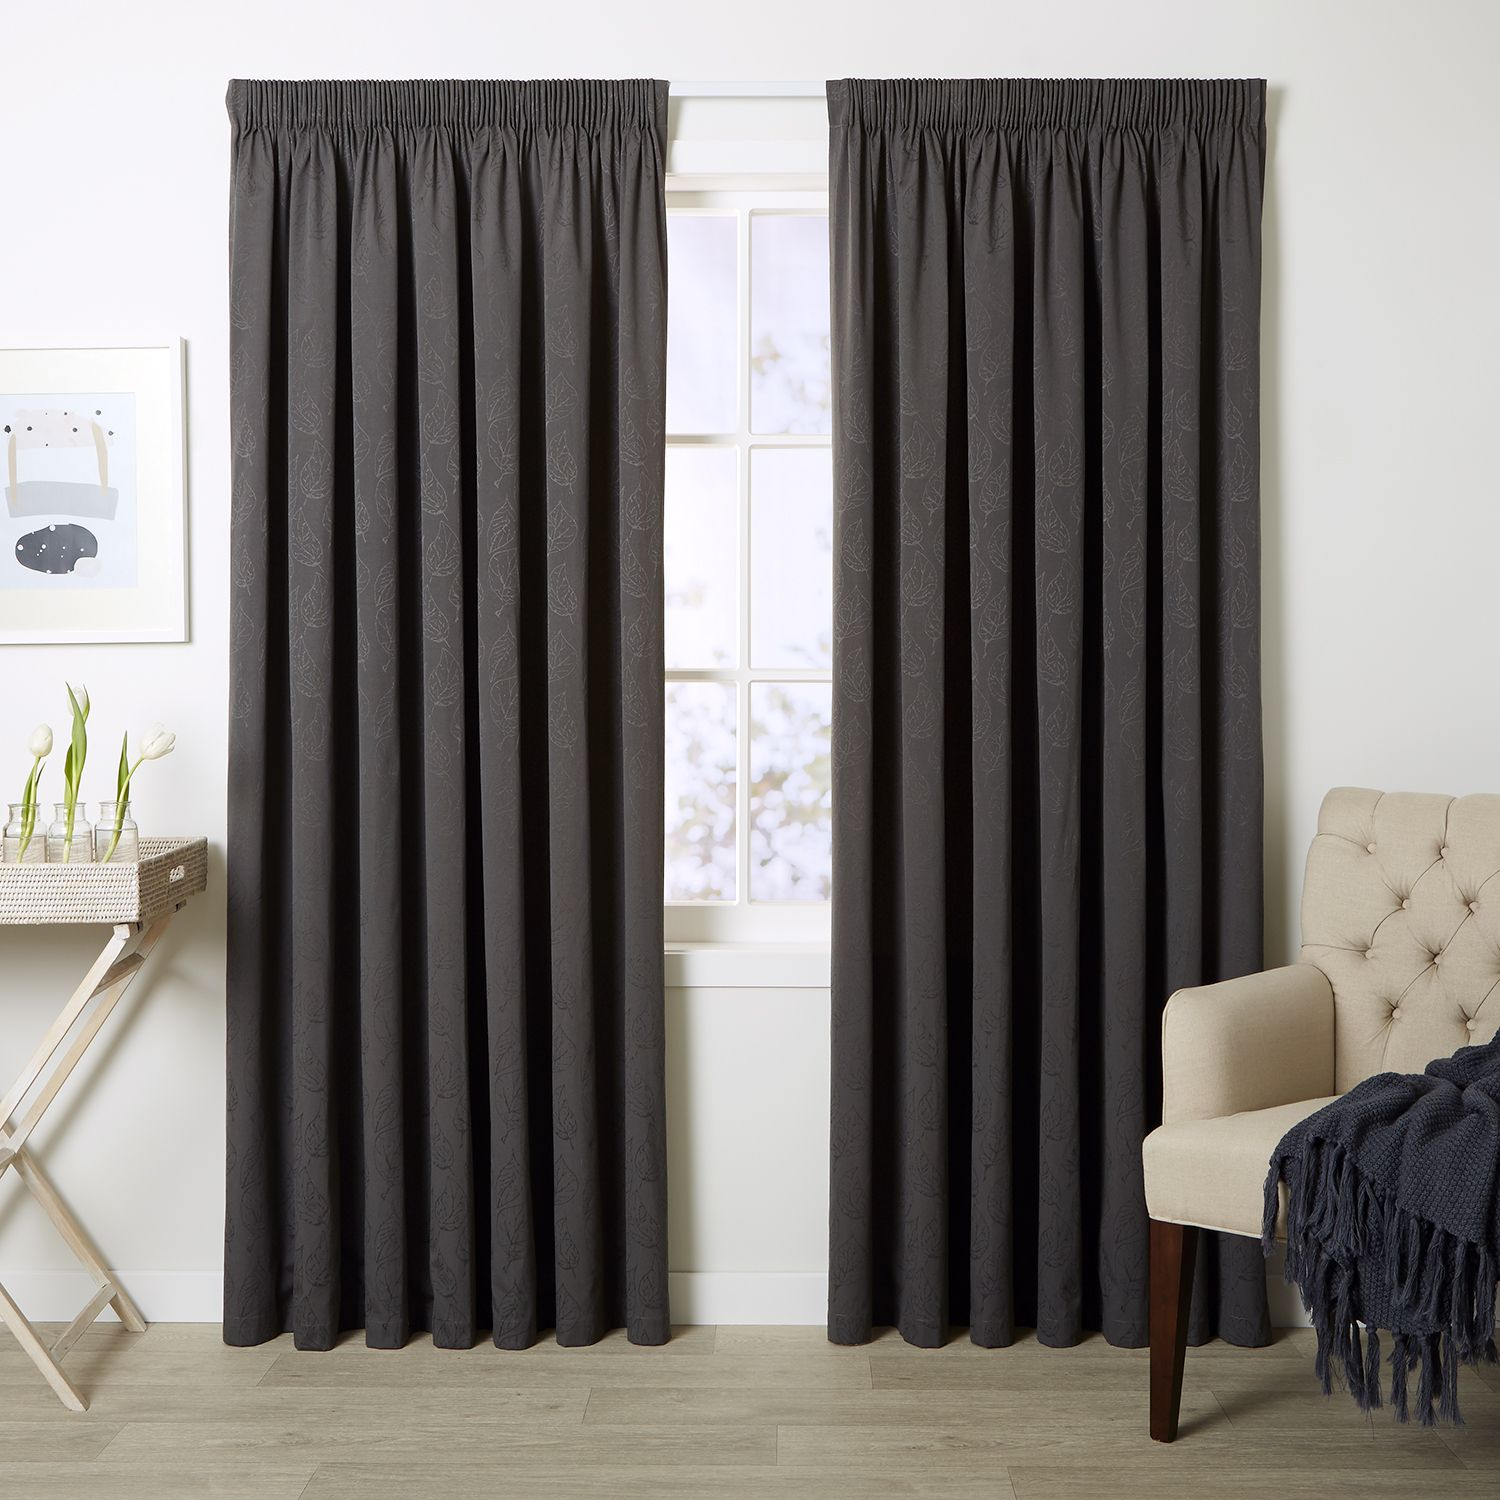 Haven Ash   Readymade Thermal Pencil Pleat Curtain   Curtain Studio Buy  Curtains Online